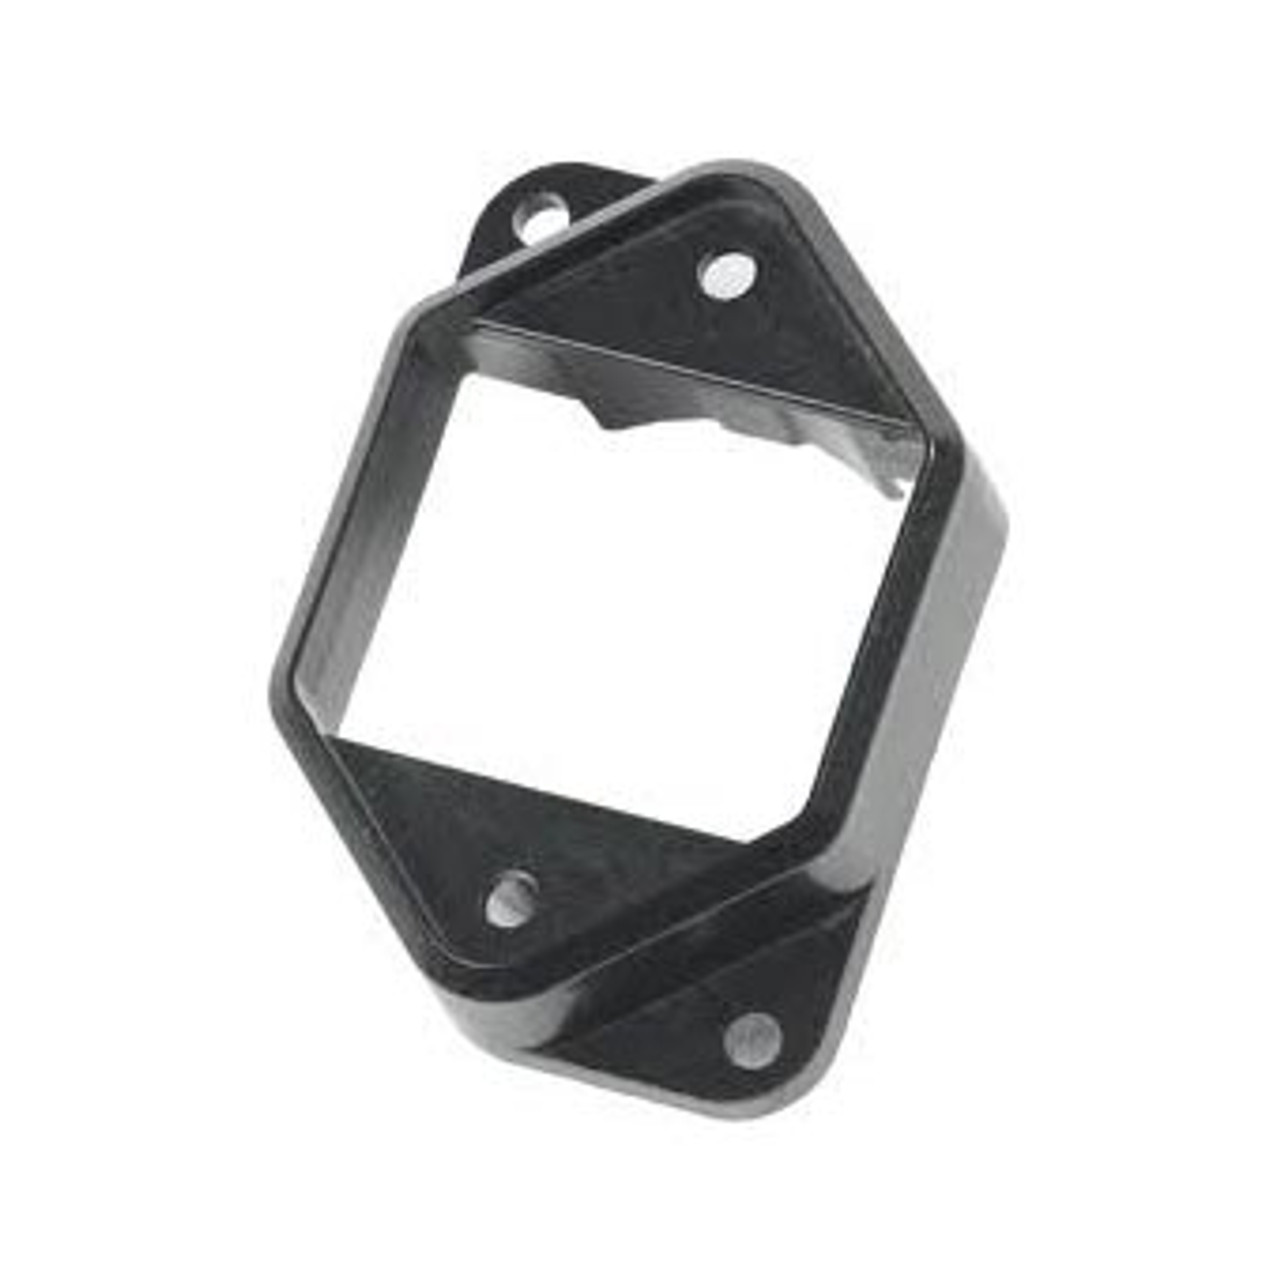 "285/185 BEZEL MOUNTING ADAPTER FOR 2-1/8"" HOLE"